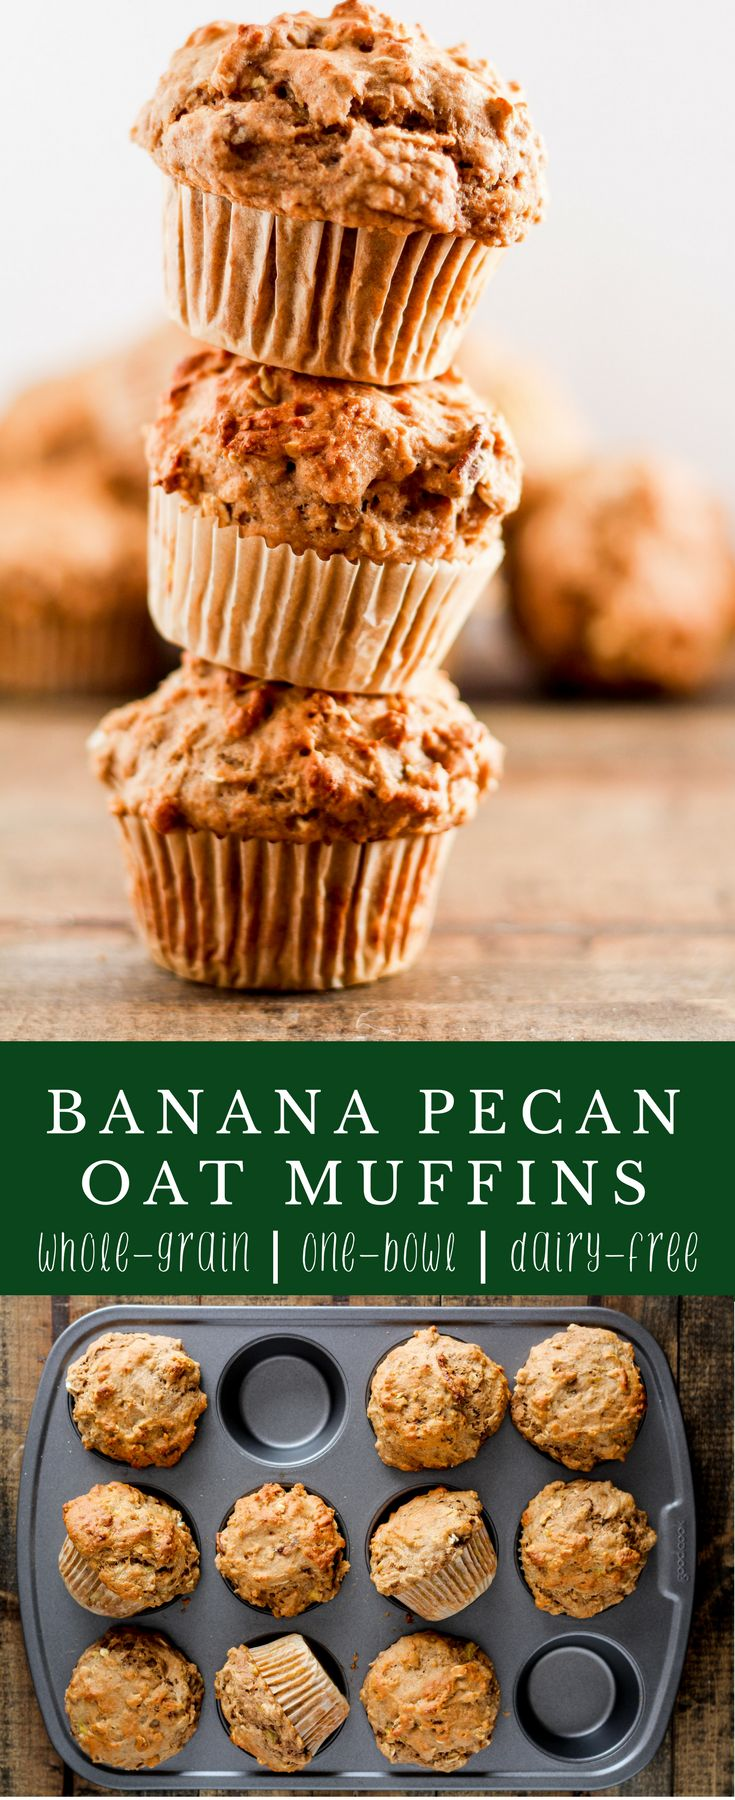 Looking for a healthy, breakfast recipe to eat on the go? These Banana Pecan Oat Muffins are easy to make, perfect for meal prep, and packed with fiber from whole grains and fruit.   Delicious recipe from @gratefulgrazer   #muffins #wholegrain #wholewheat #mealprep #breakfast #dairyfree #vegetarian via @gratefulgrazer